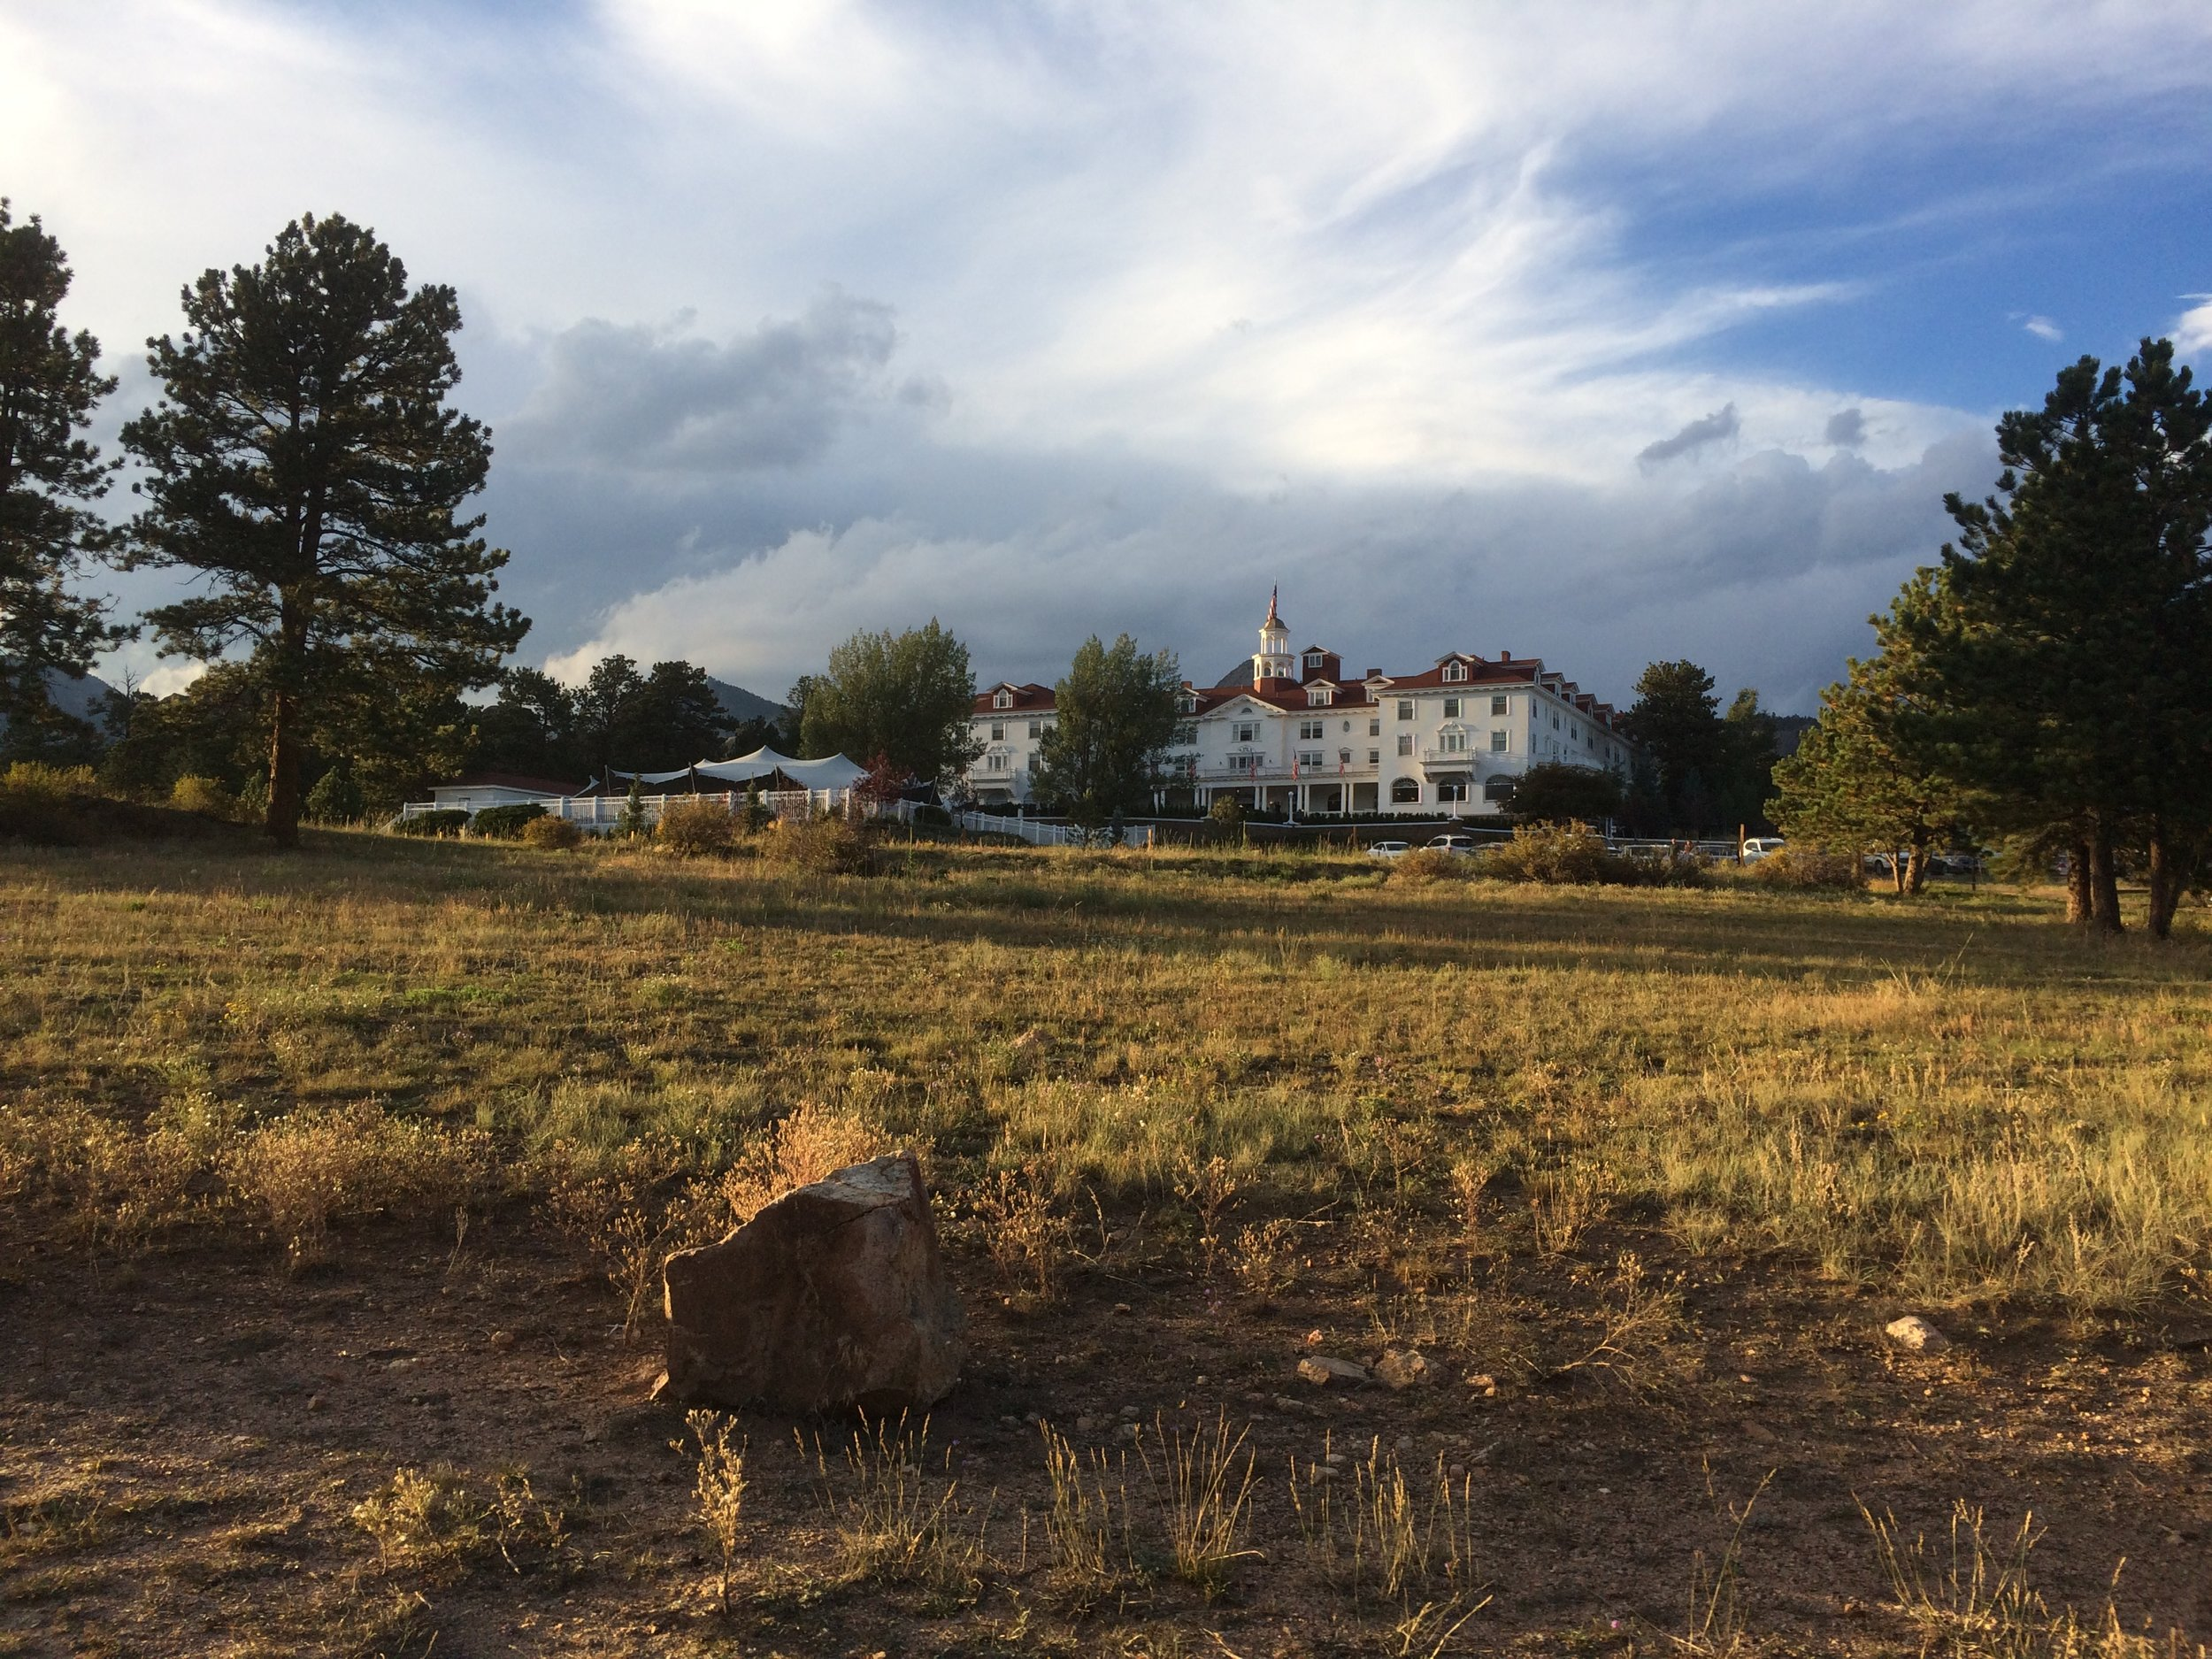 The Stanley Hotel of The Shining fame.